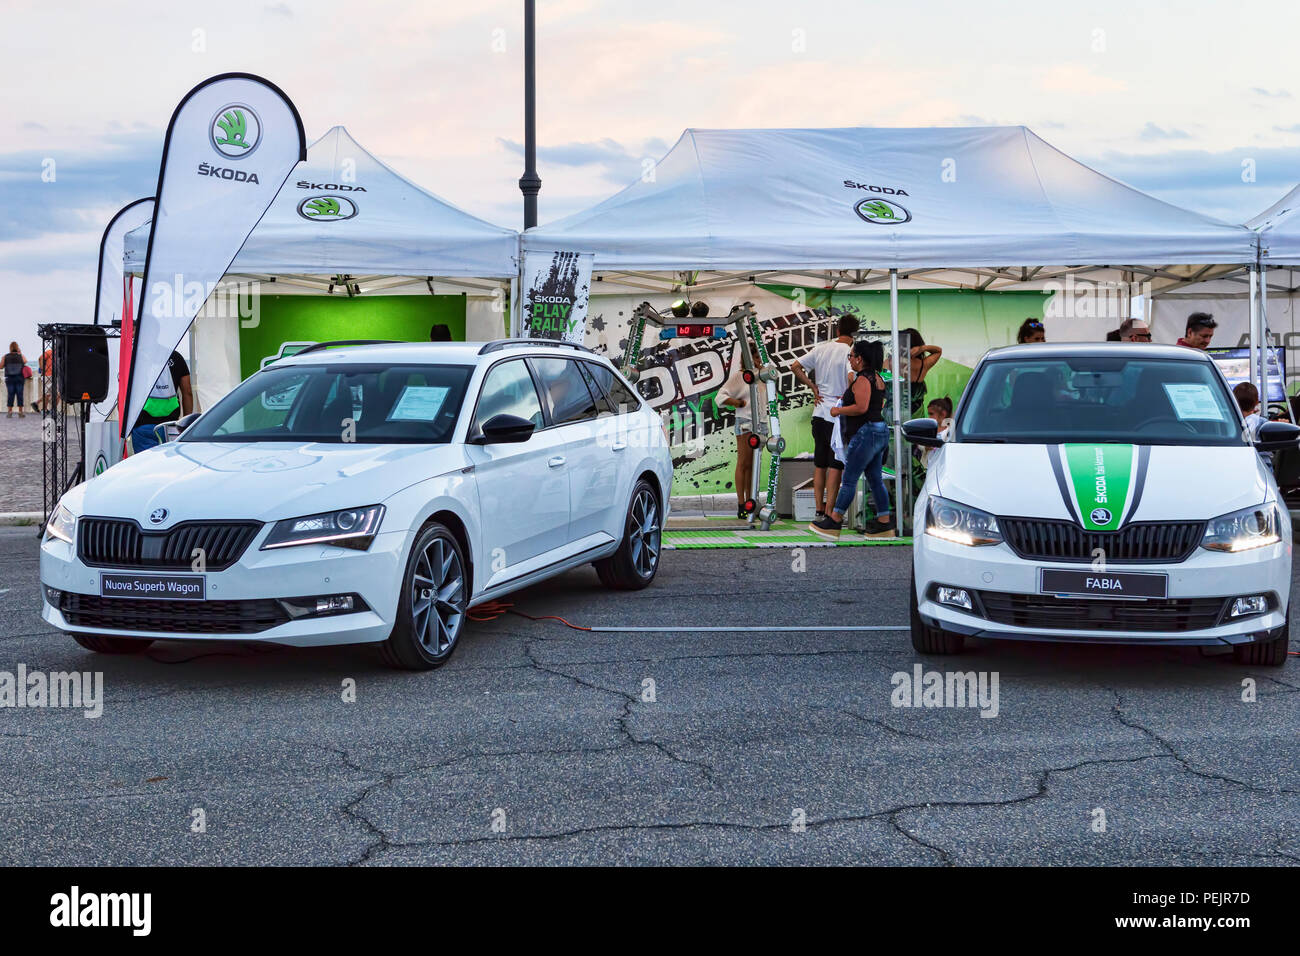 Rome,Italy - July 21, 2018:On occasion of Rome's Rally event, the motor showrooms exhibit new cars models in Rome in outdoors Skoda stand . - Stock Image